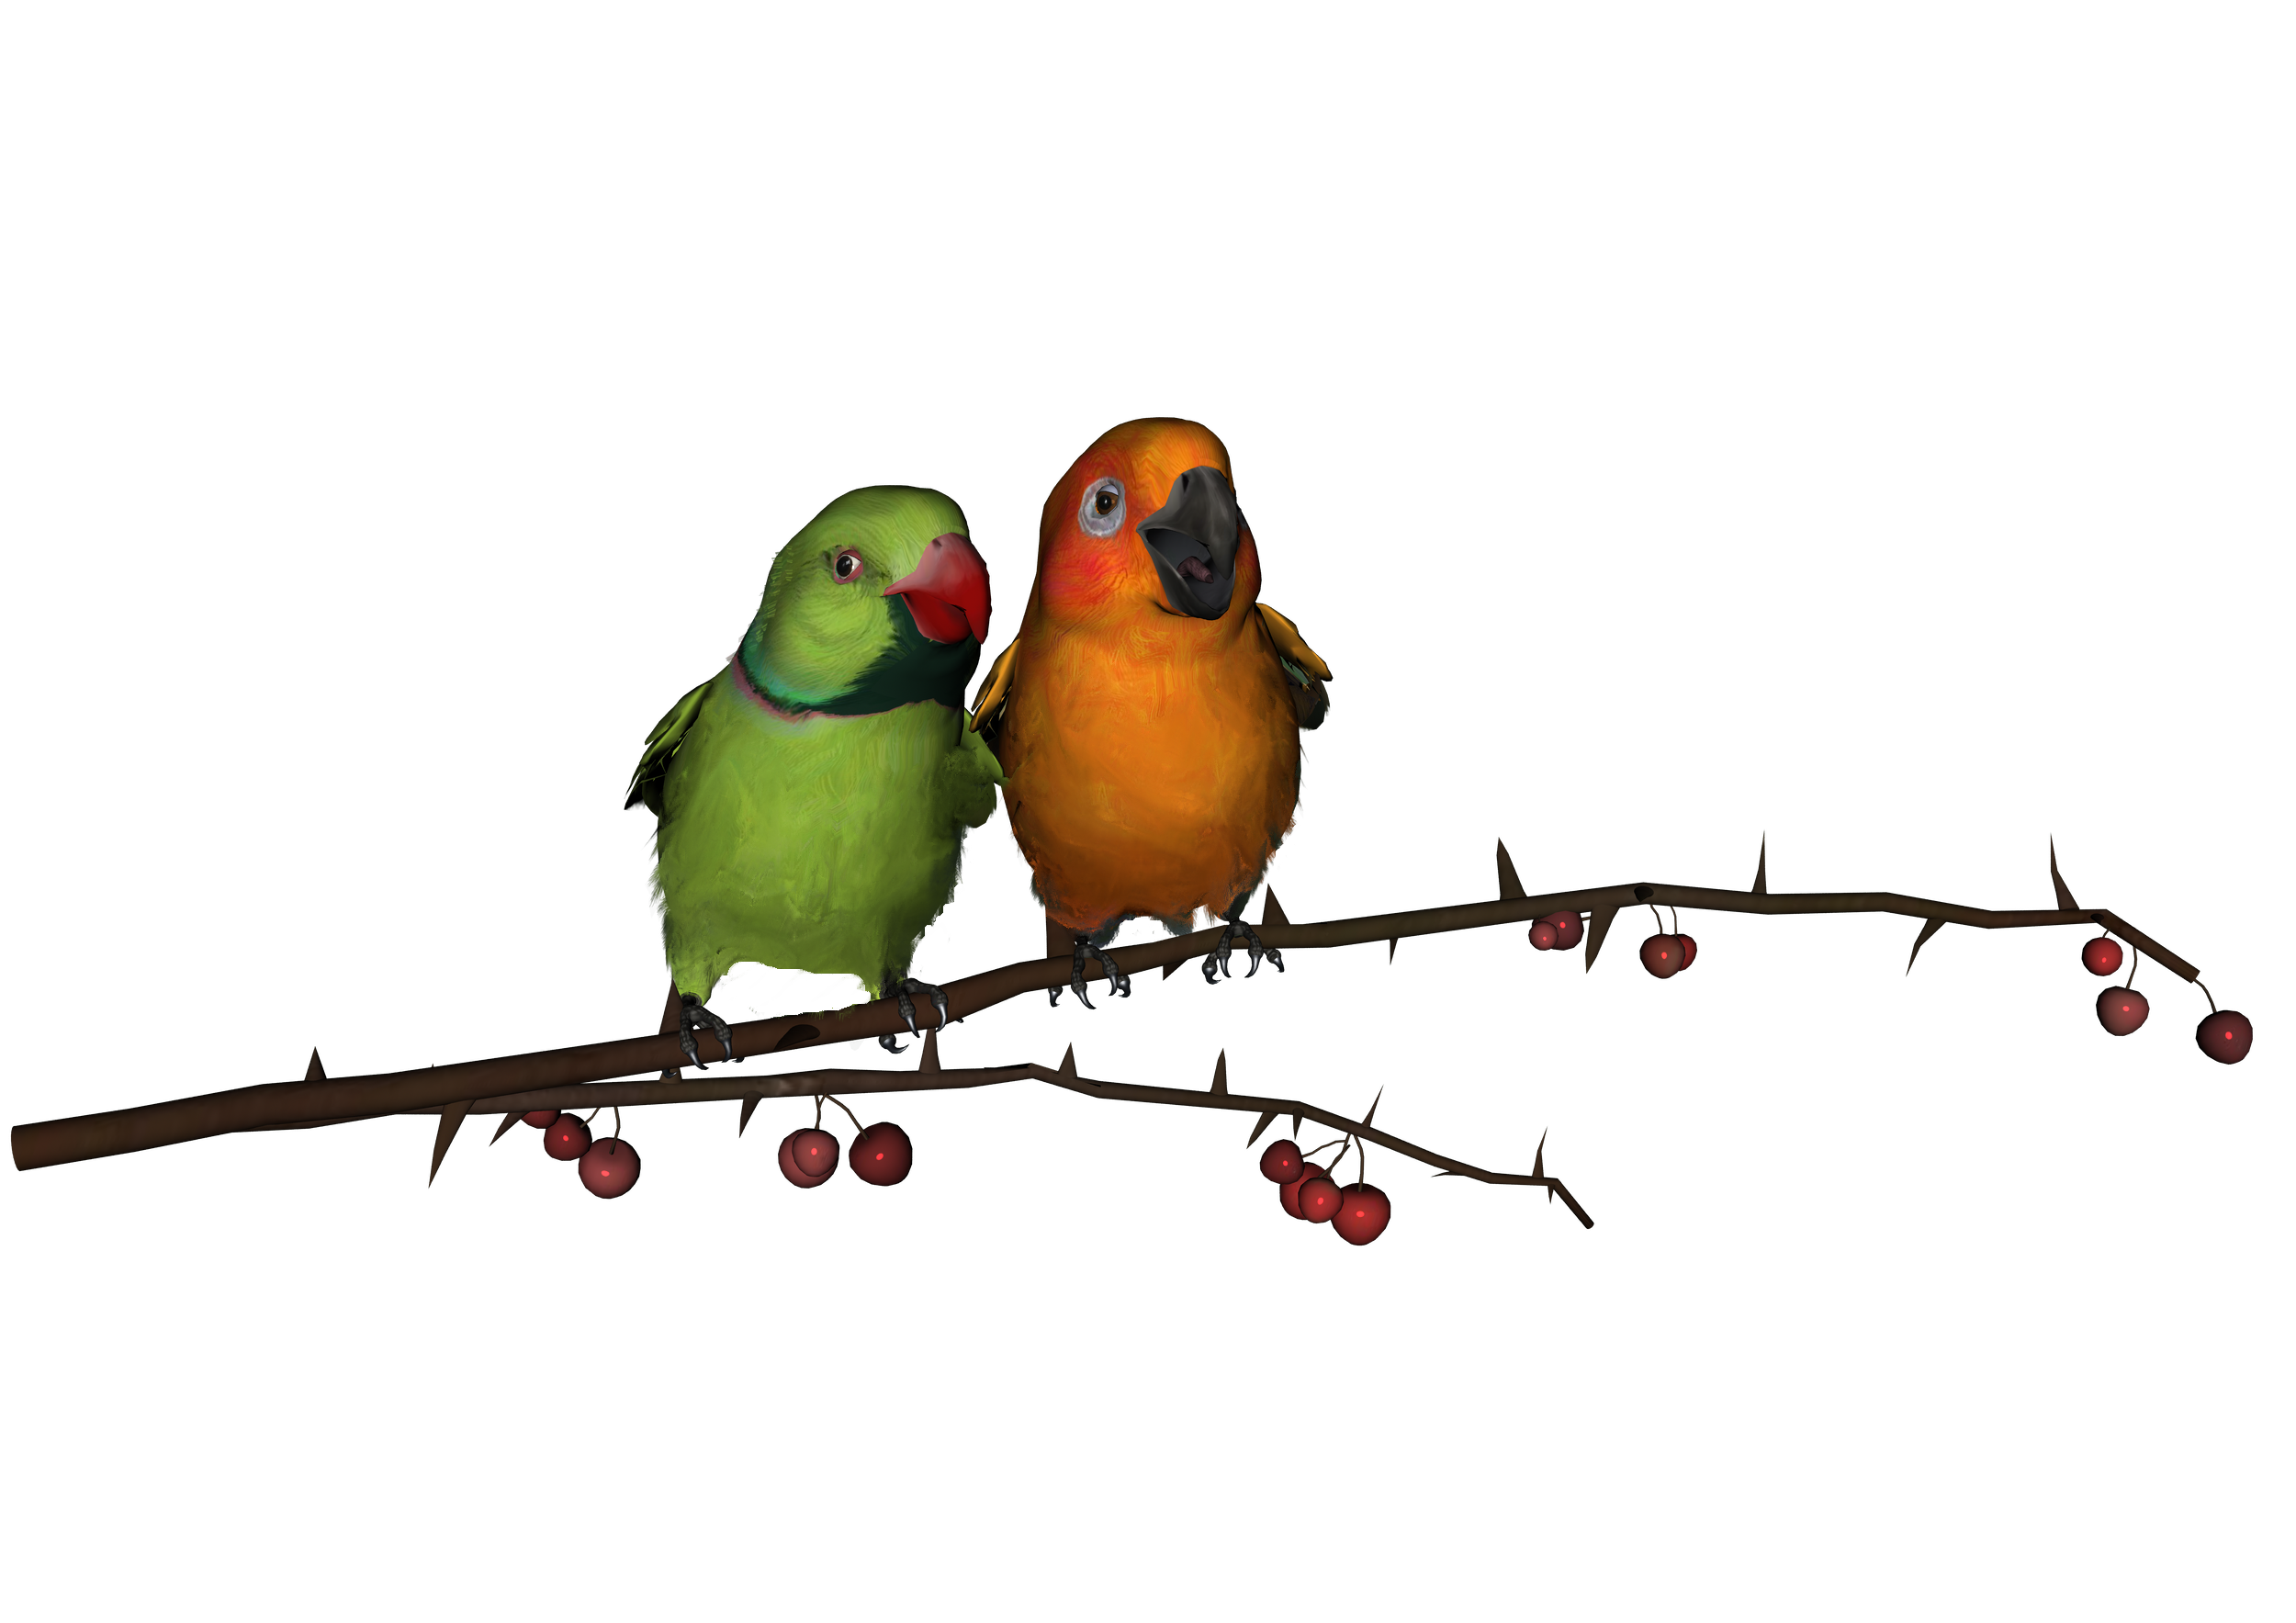 Love birds png. Download all